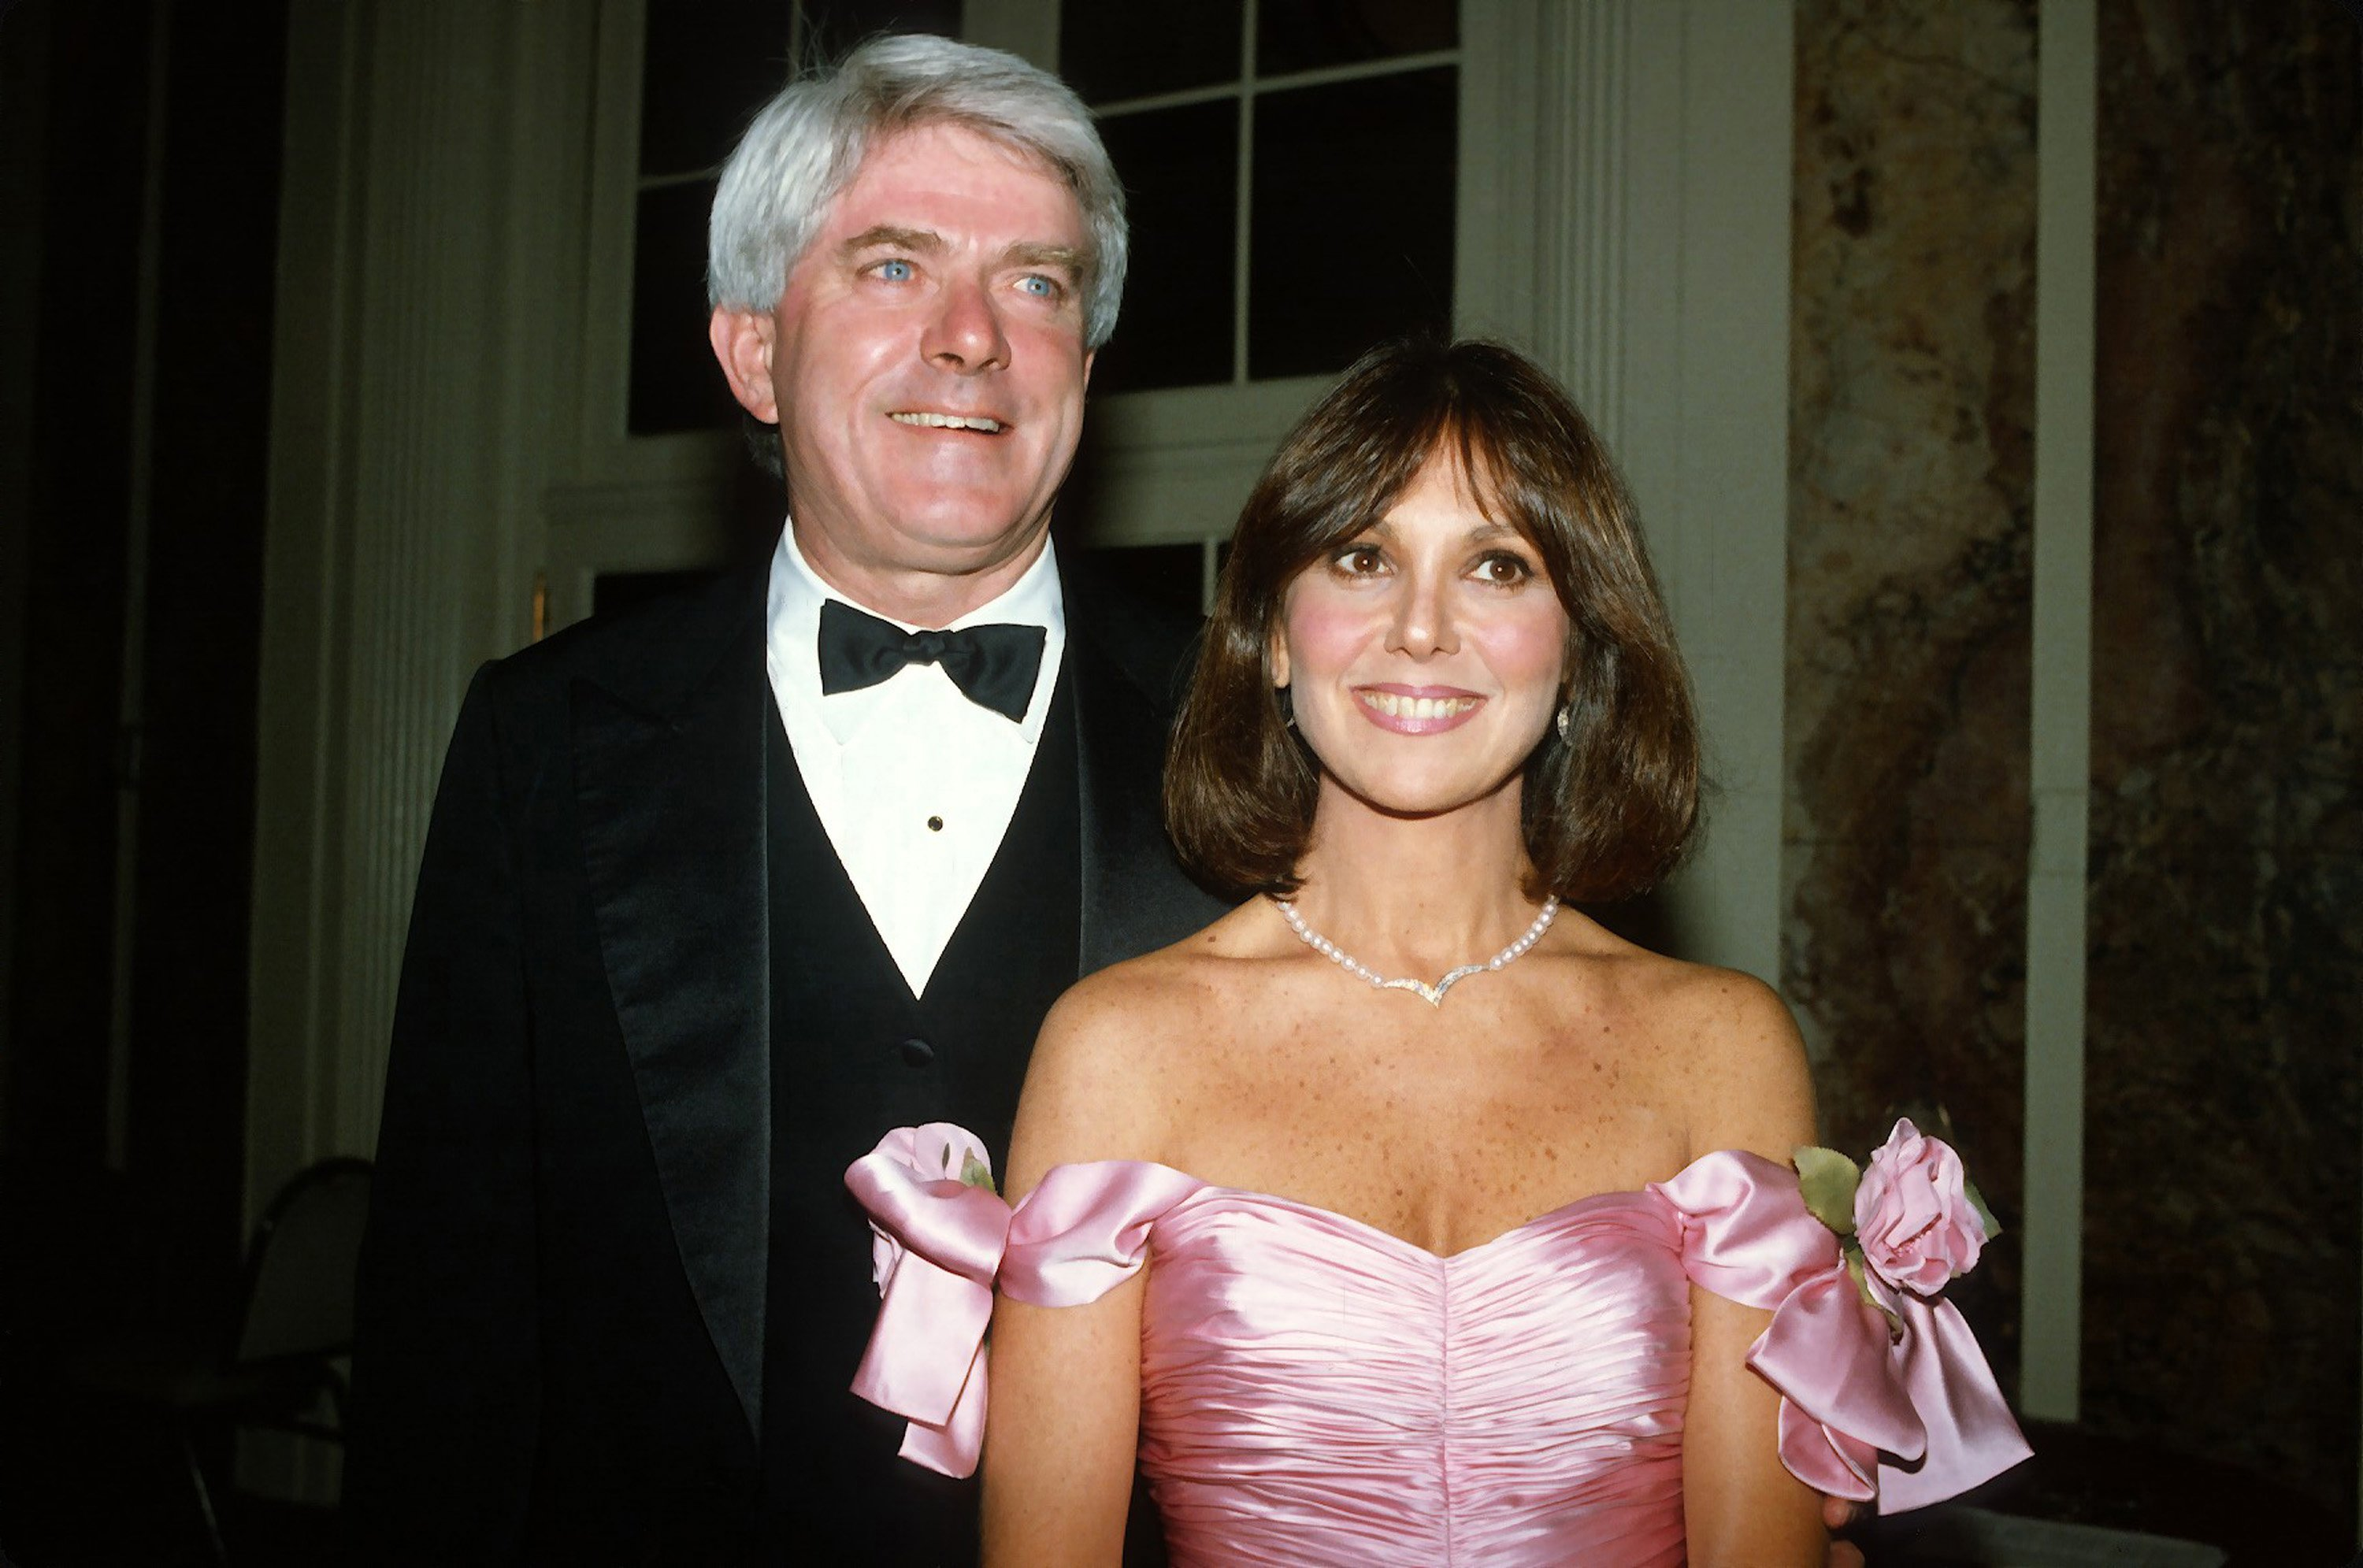 Phil Donahue and Marlo Thomas pose for a photo at Gloria Steinem's 50th birthday party in New York City on May 23, 1984 | Photo: Getty Images